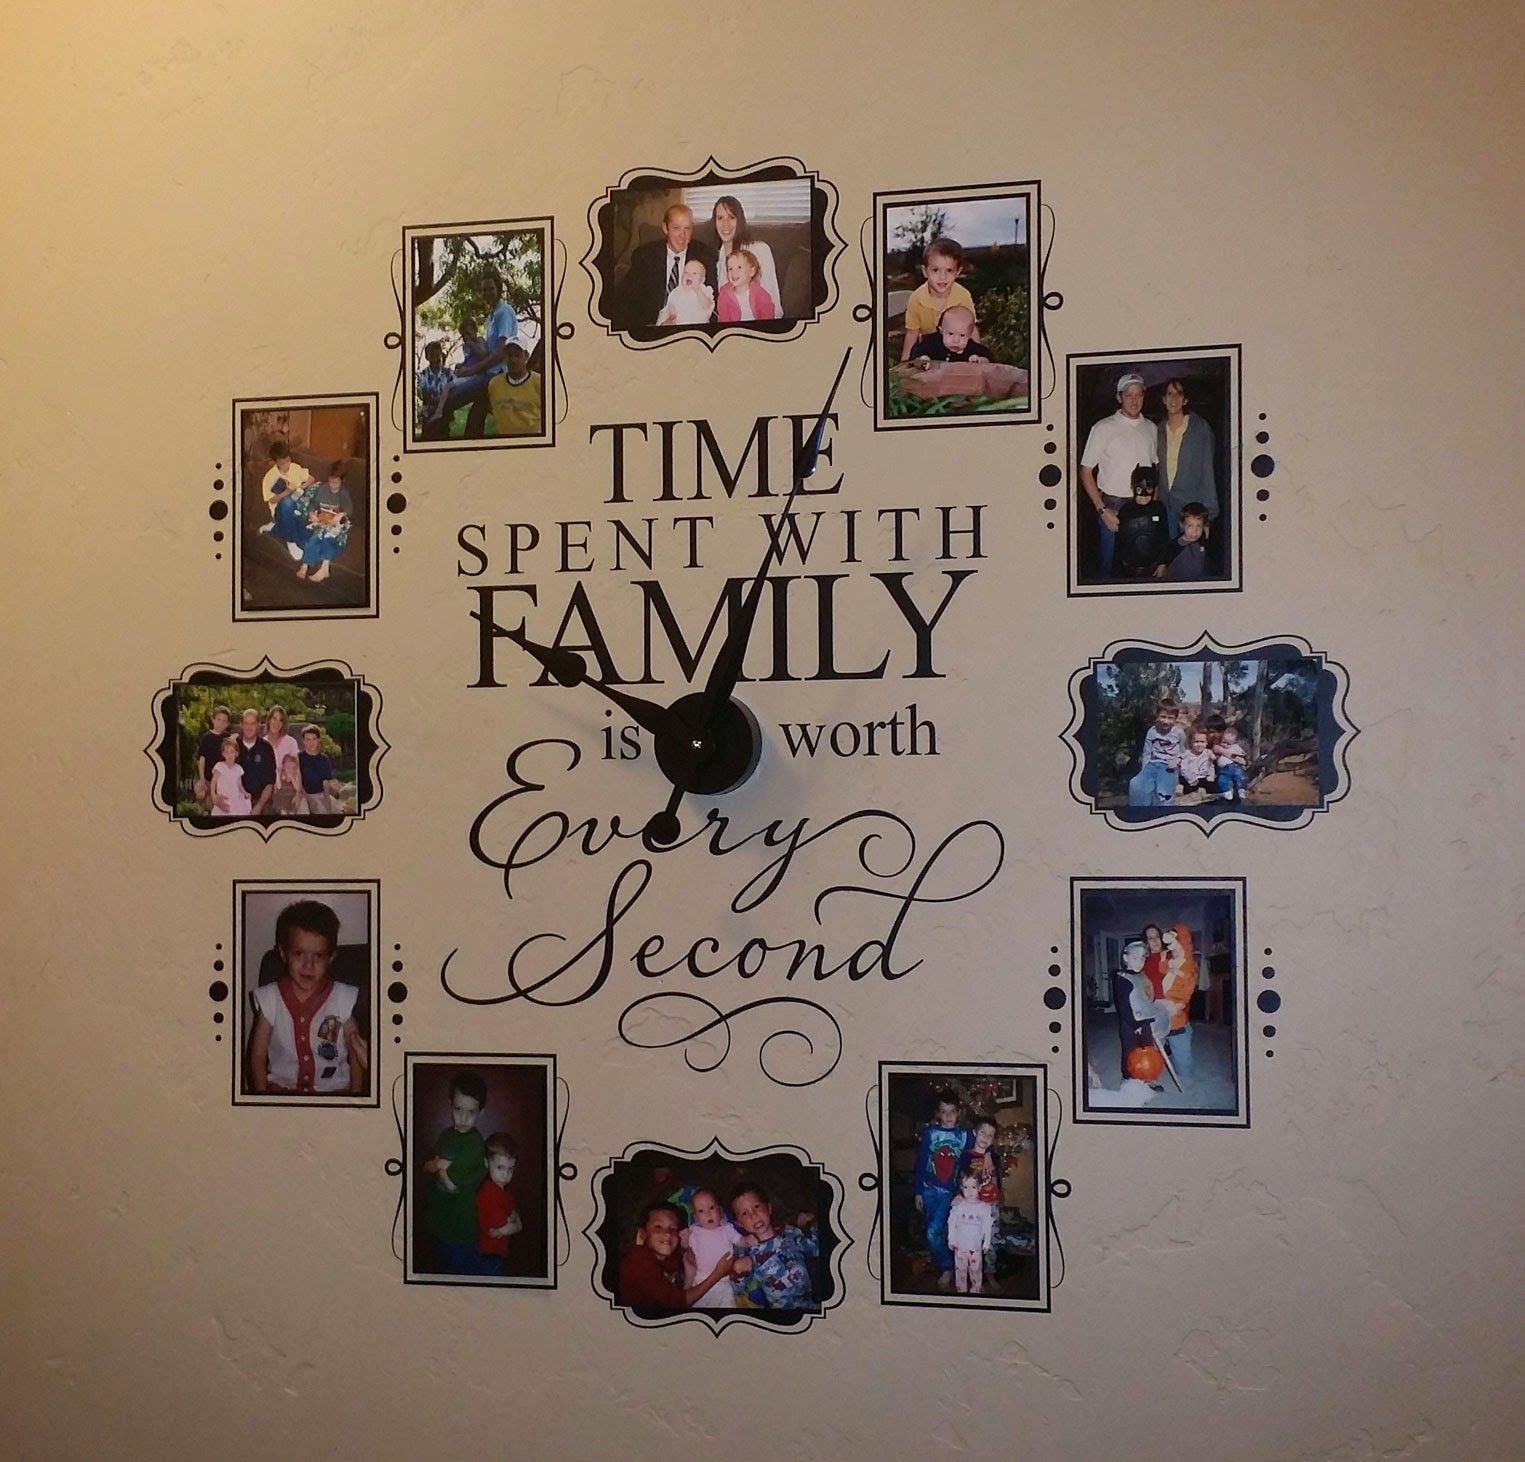 Vinyl  Decor Coupon Code For Time Spent With Family Vinyl Wall - Custom vinyl wall decals groupon